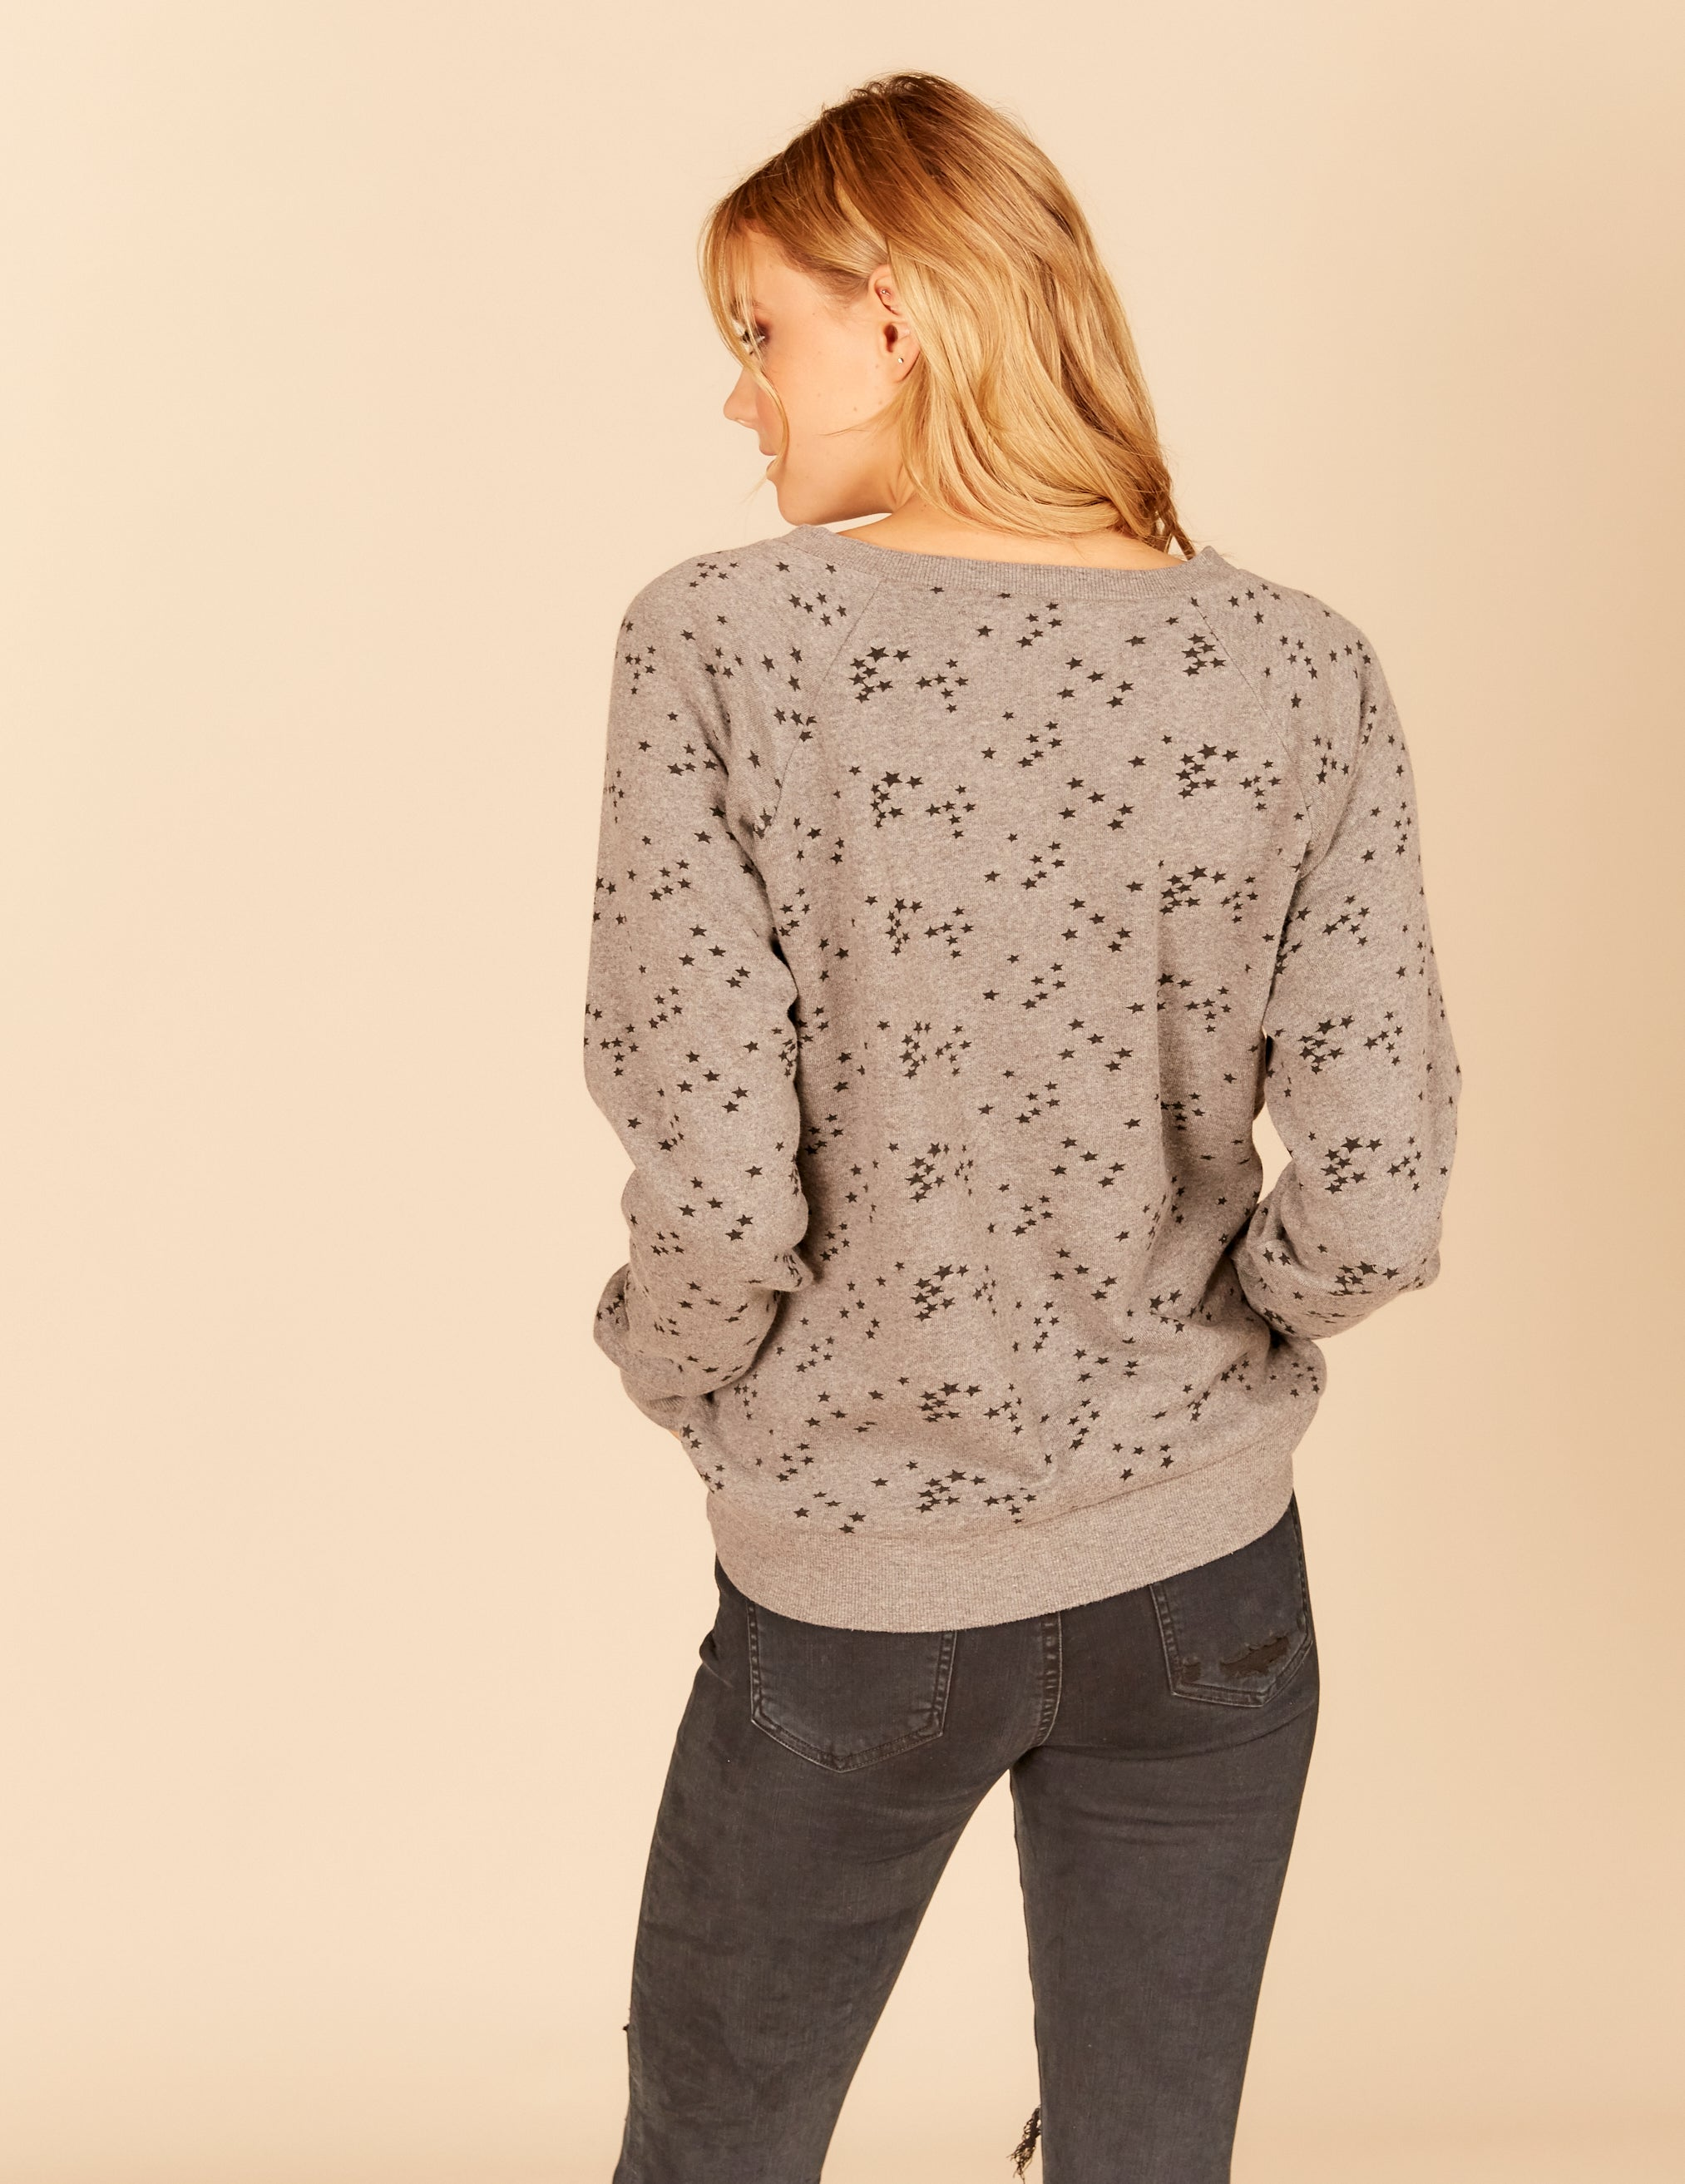 Mini Star Cluster New Burnout Criss Cross Neck Crewneck Sweatshirt